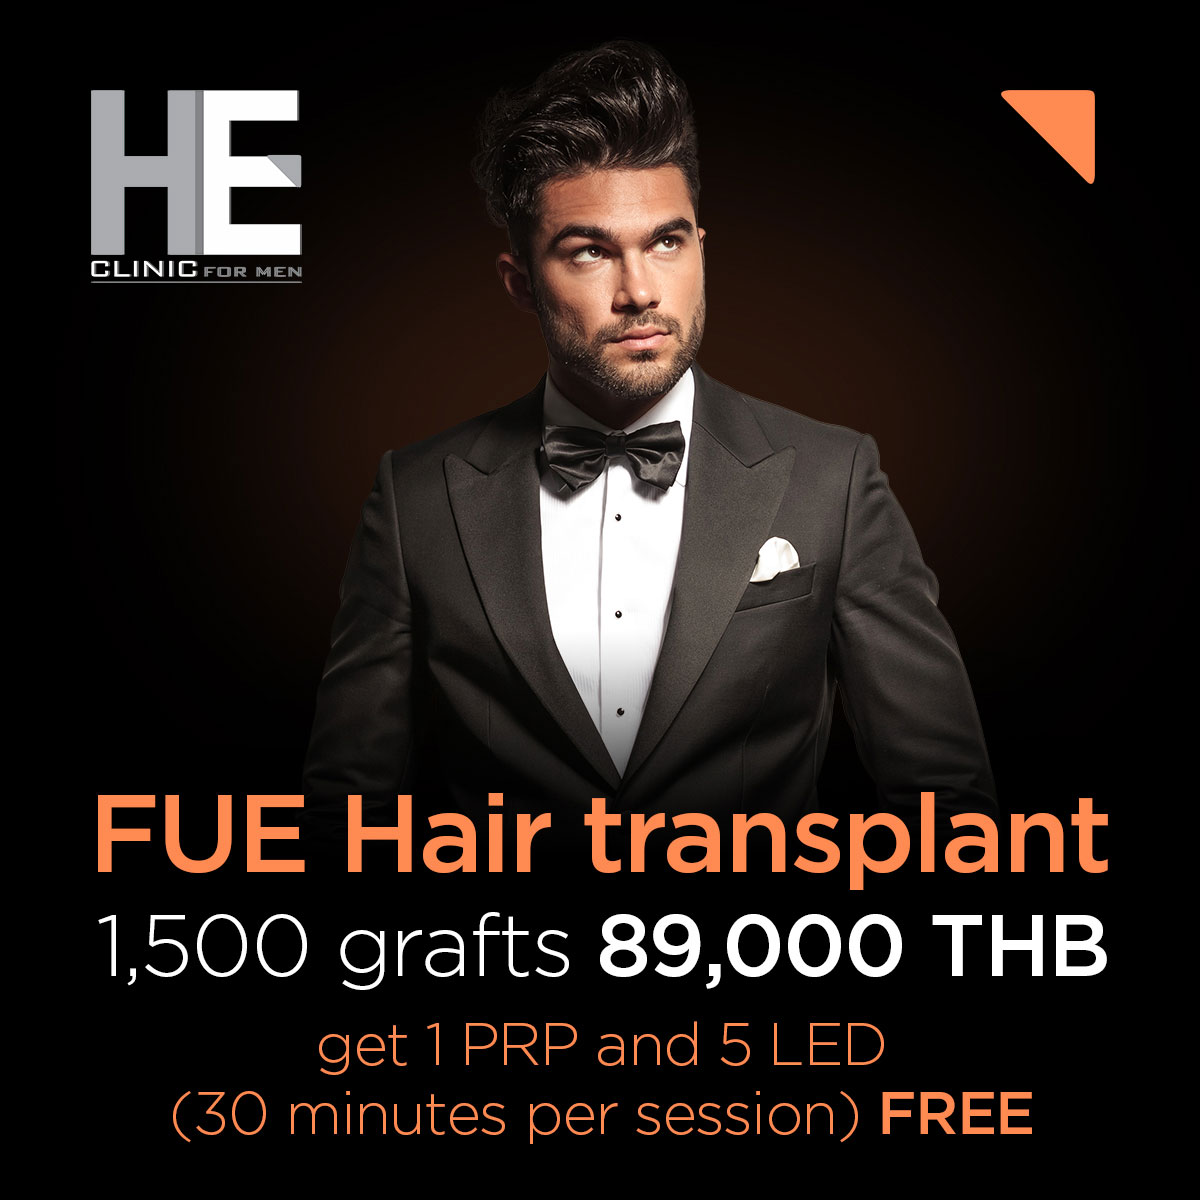 New FUE promotion at HE Clinic